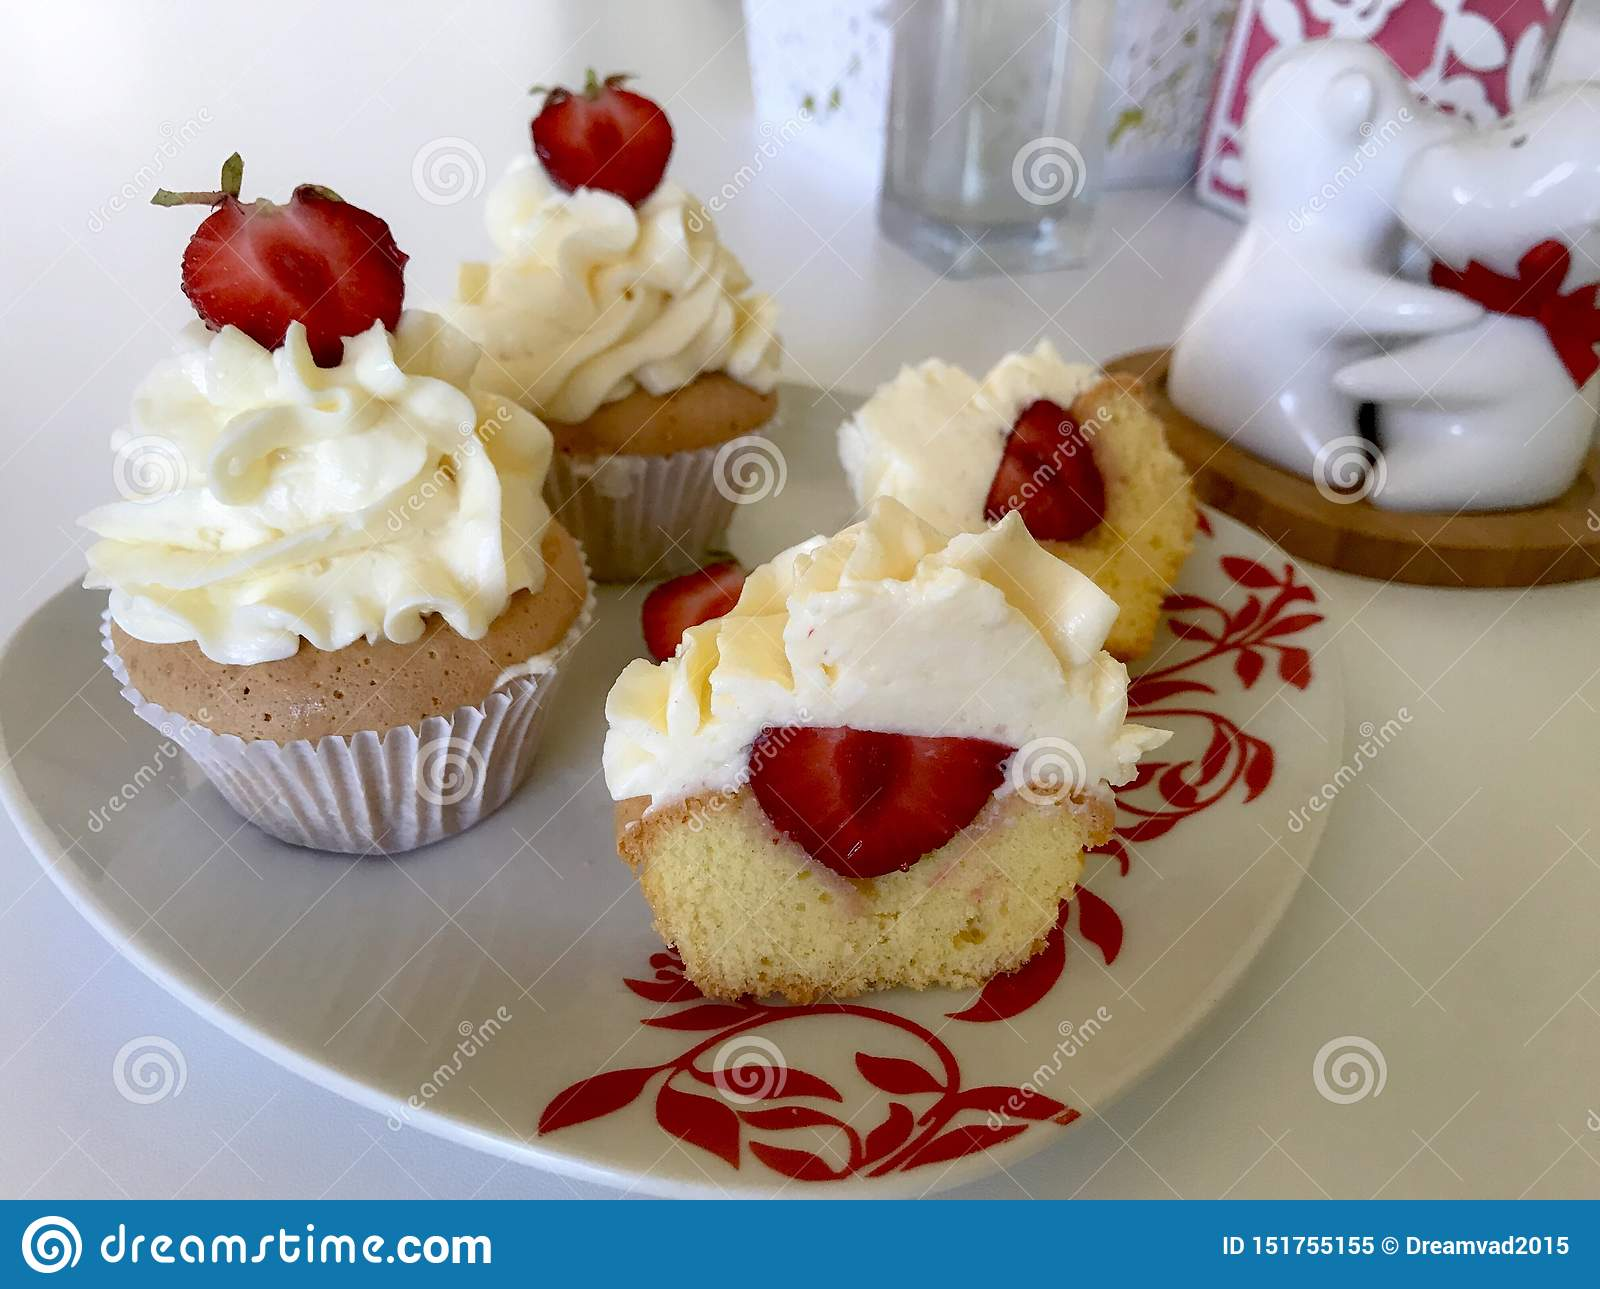 Cupcakes with strawberries and butter cream. One of them is cut, the filling is visible. On a white surface with decorative